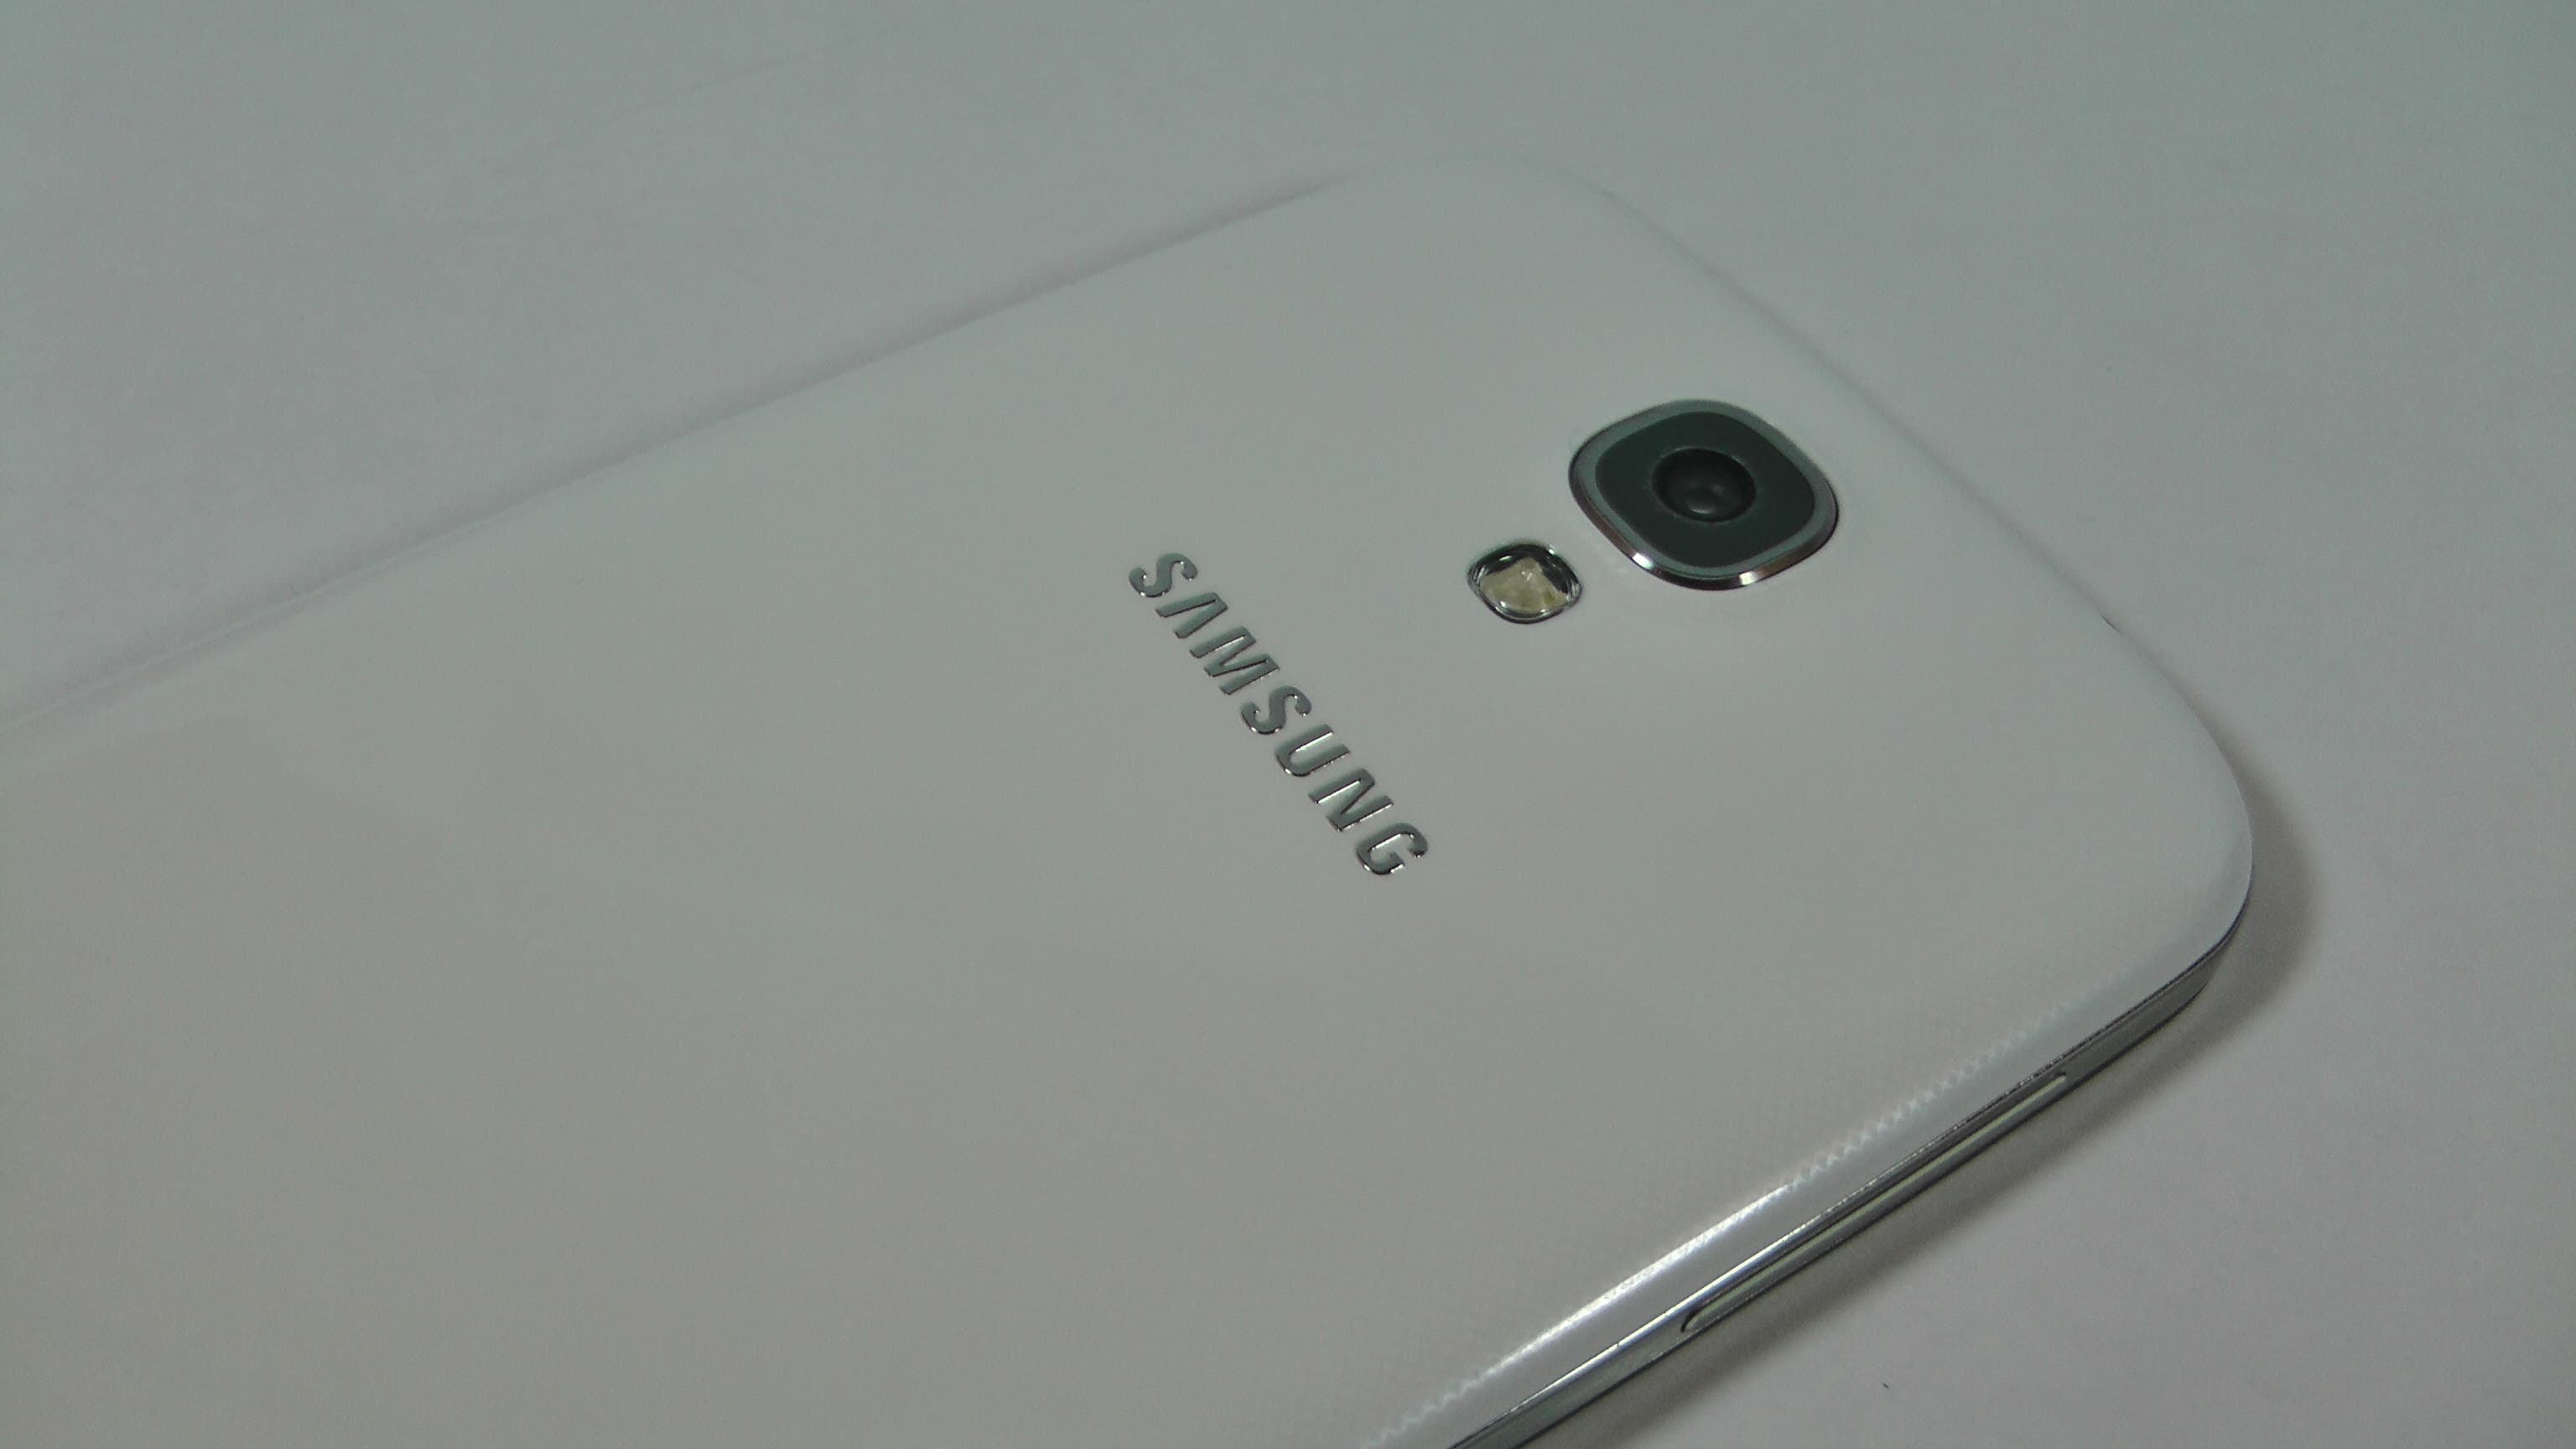 Samsung Galaxy S4 Test Hardware 17